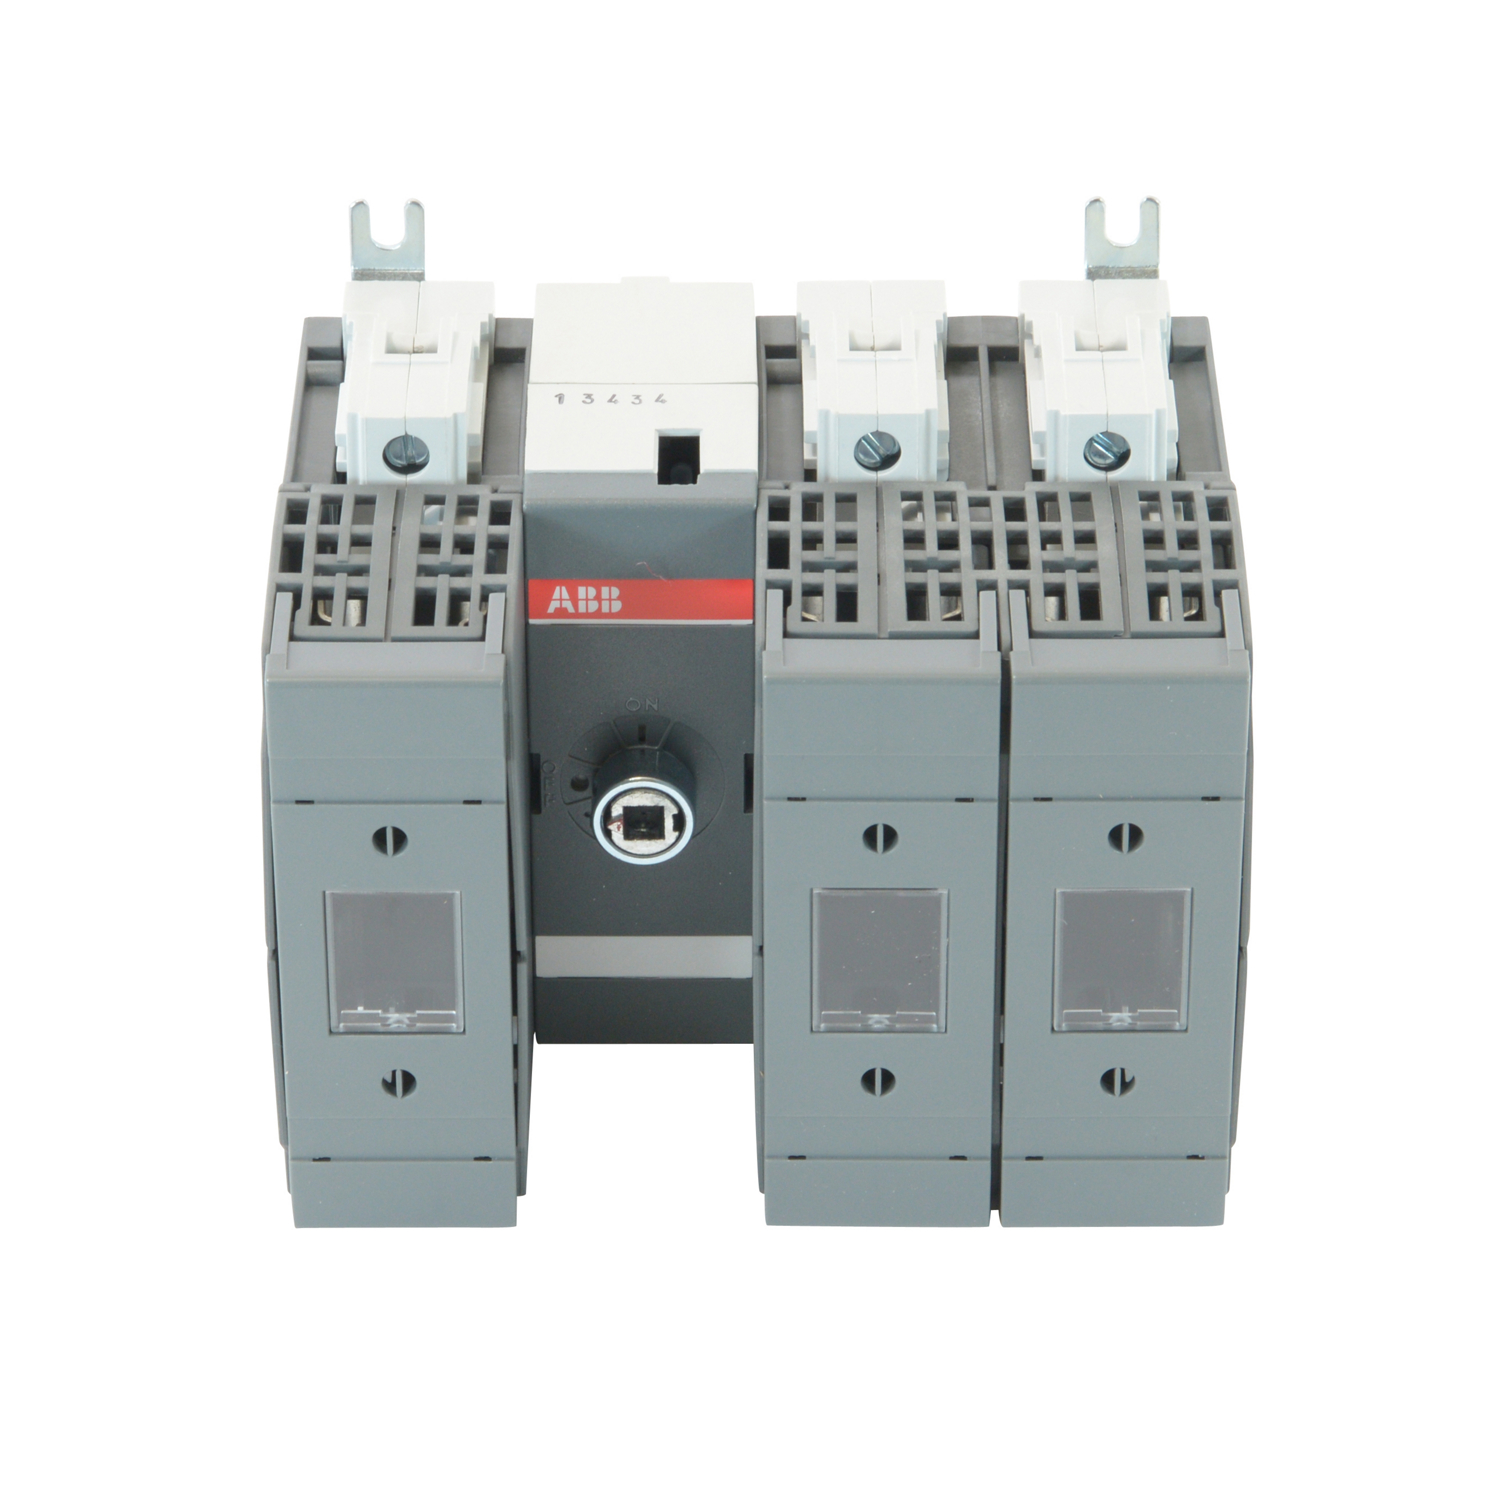 ABB OS60GJ12 Fused Disconnect Switch. 60 Amp. Base and DIN Rail Mounted. 3-Pole. UL Fuse Type: Class J. 600V AC. Wire Size: 14 - 4 AWG. For use with 6 mm Shafts and Handles. Integral Lug Kit & IP20 Terminal Shrouds Included.